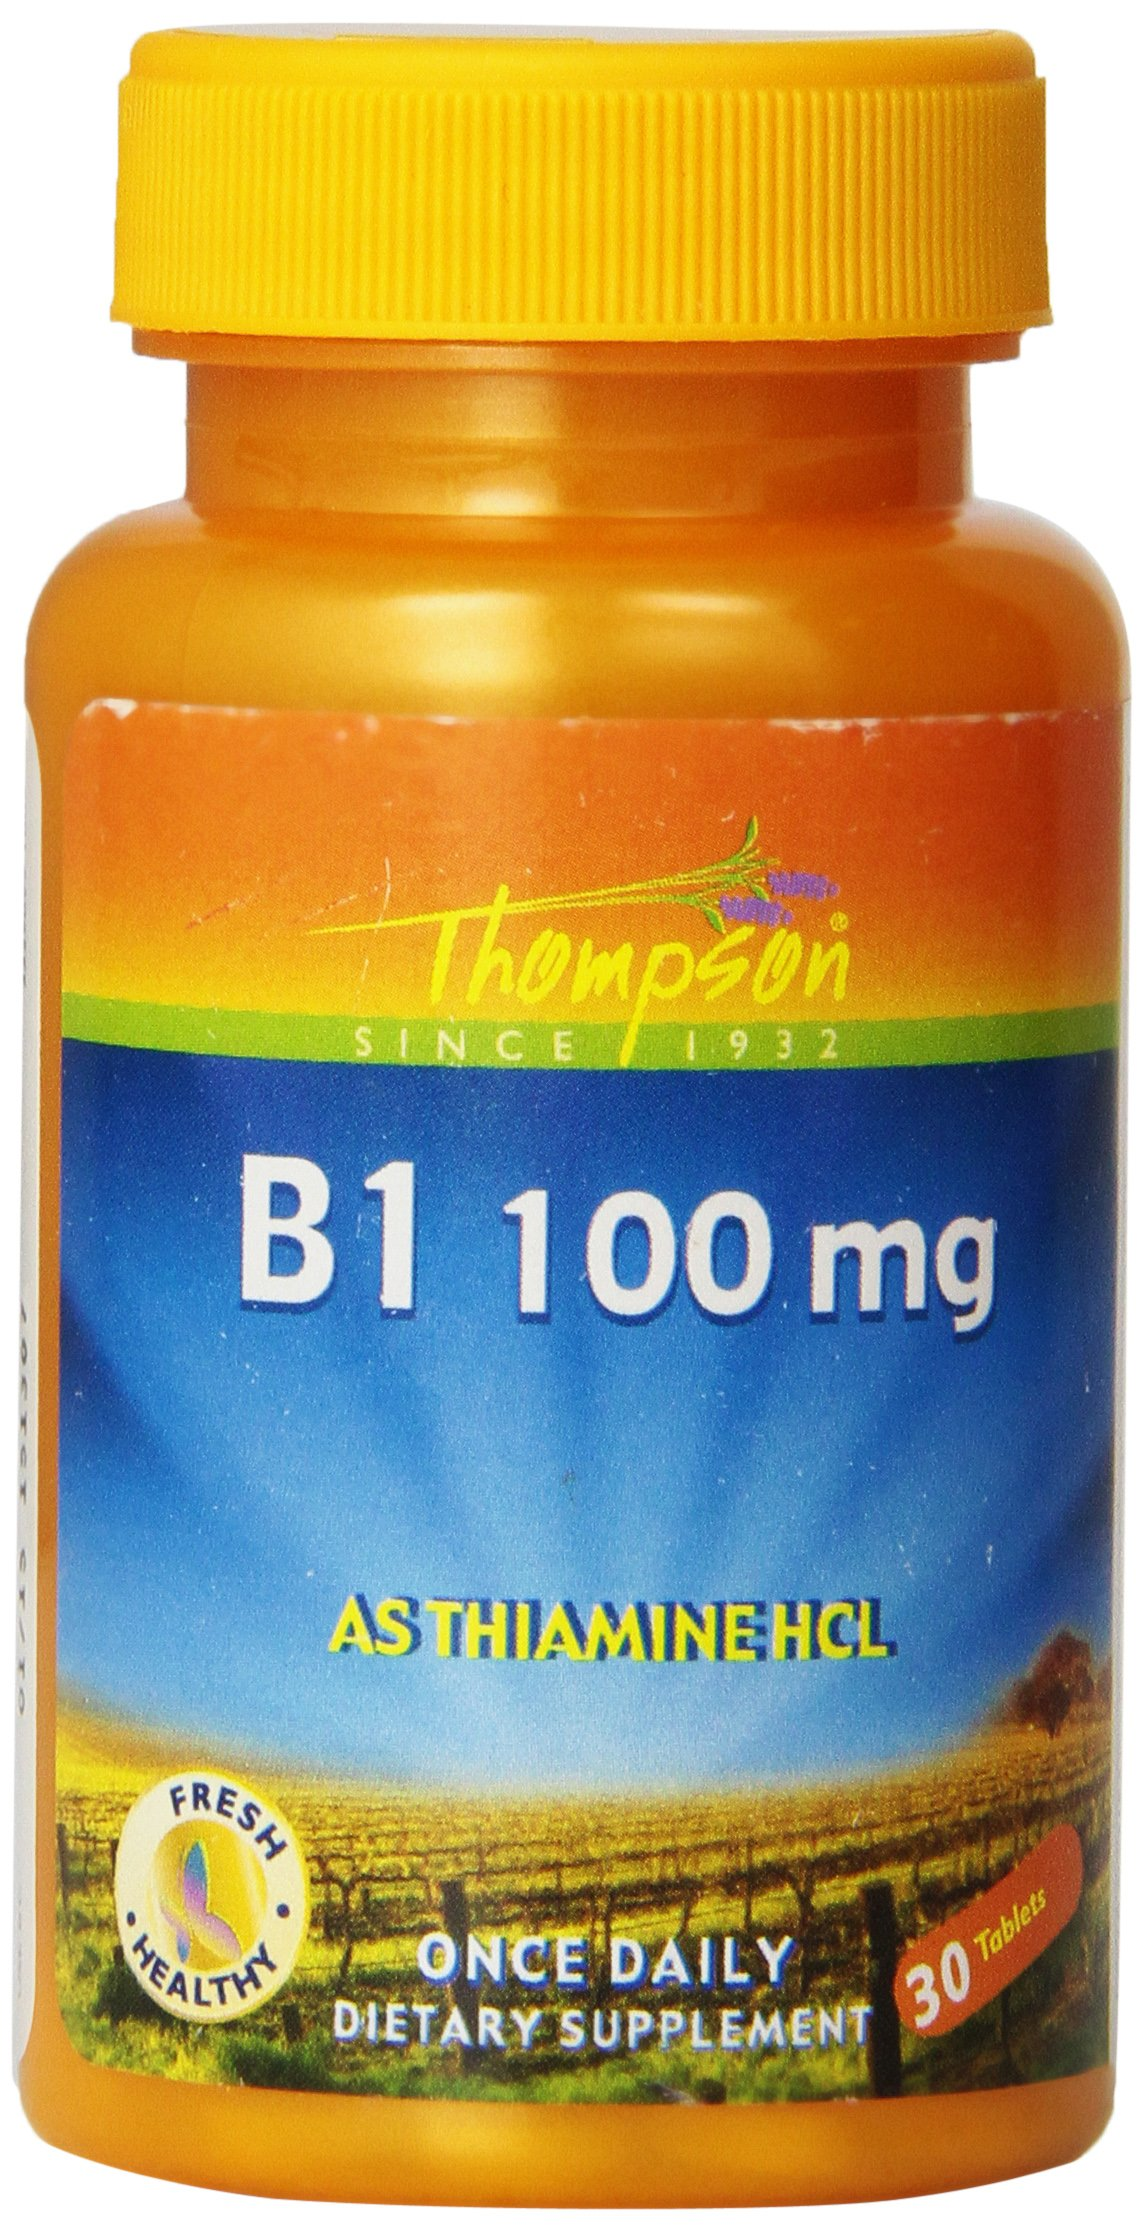 Thompson B-1 Tablets, 100 Mg, 30 Count (Pack of 4)